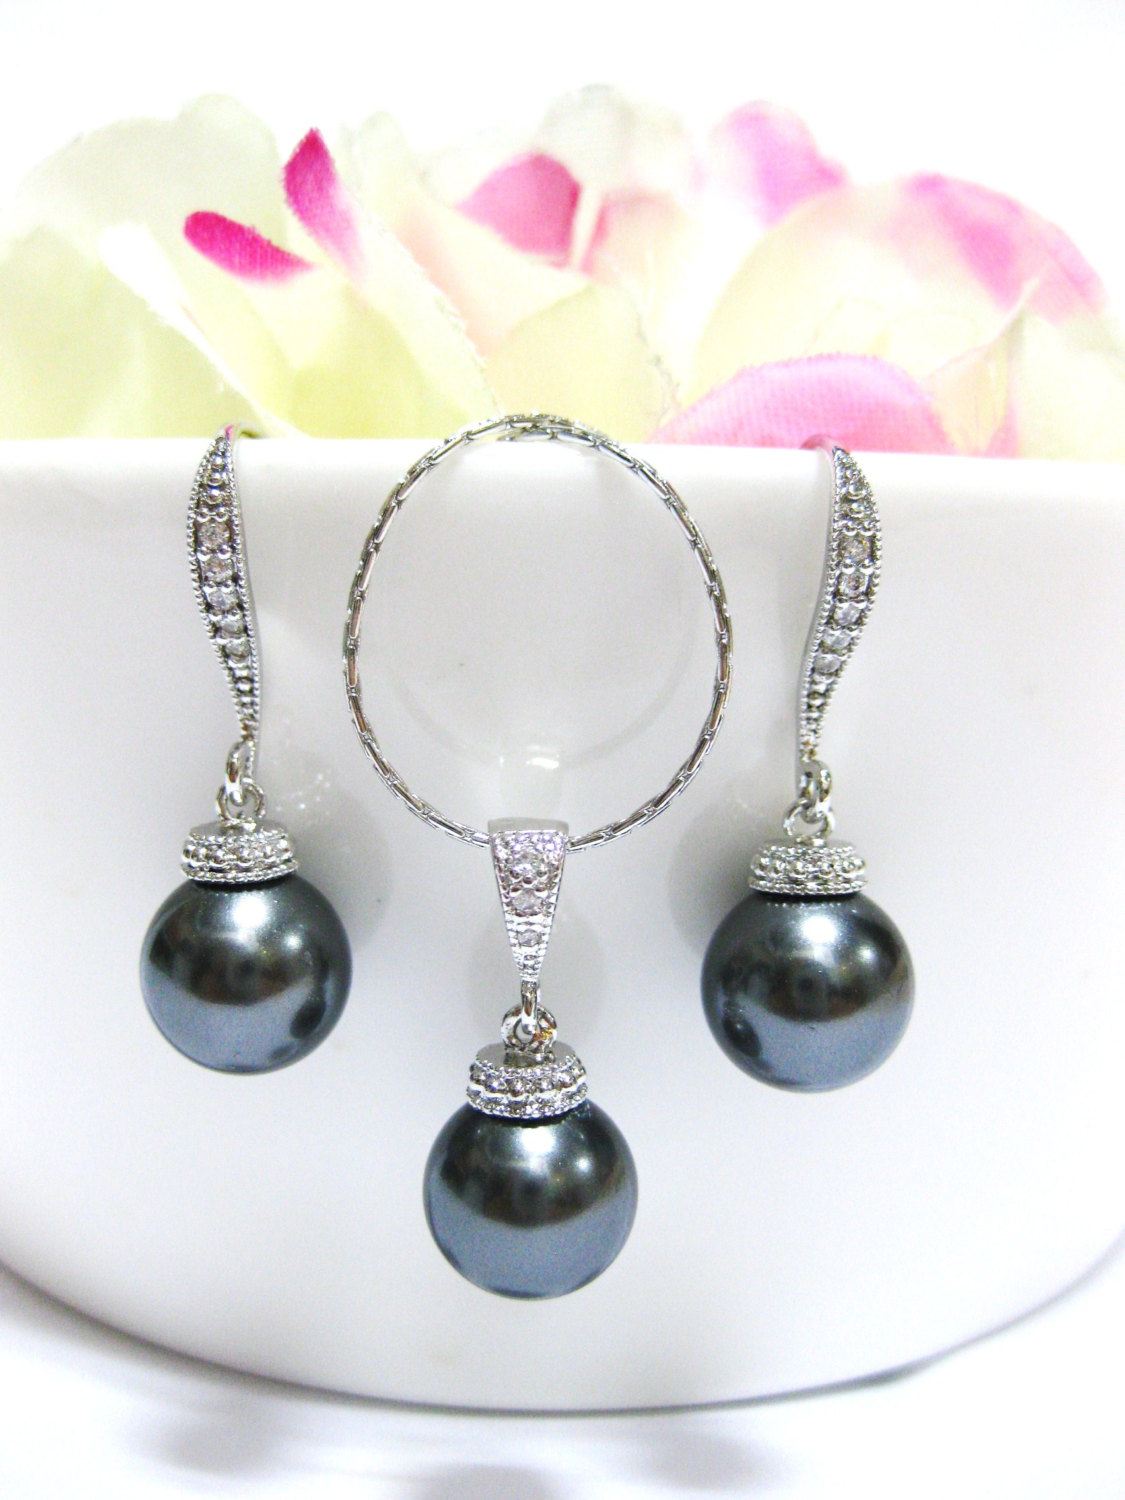 Bridal Pearl Earrings Dark Grey Charcoal Jewelry Swarovski 10mm Pearl Wedding Jewelry Bridesmaid Gift Black Earrings (E005)